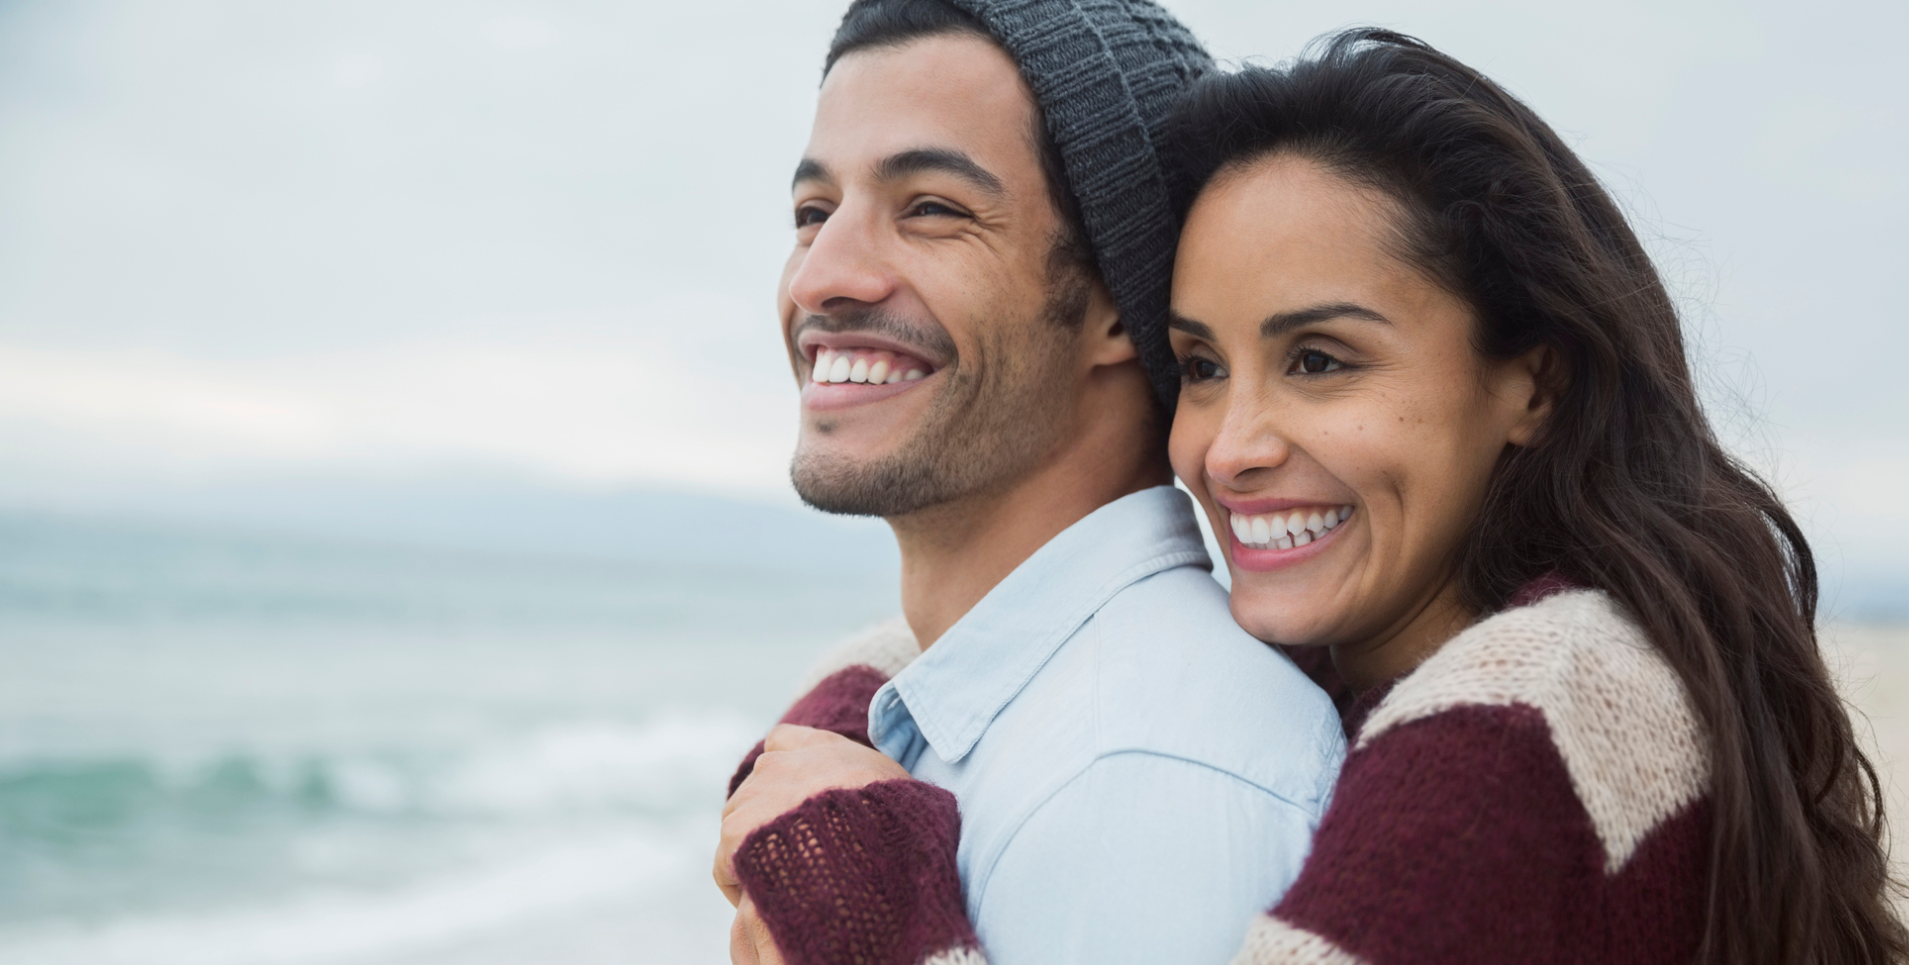 9 things that should be in a relationship in the first month, otherwise they lead to nowhere